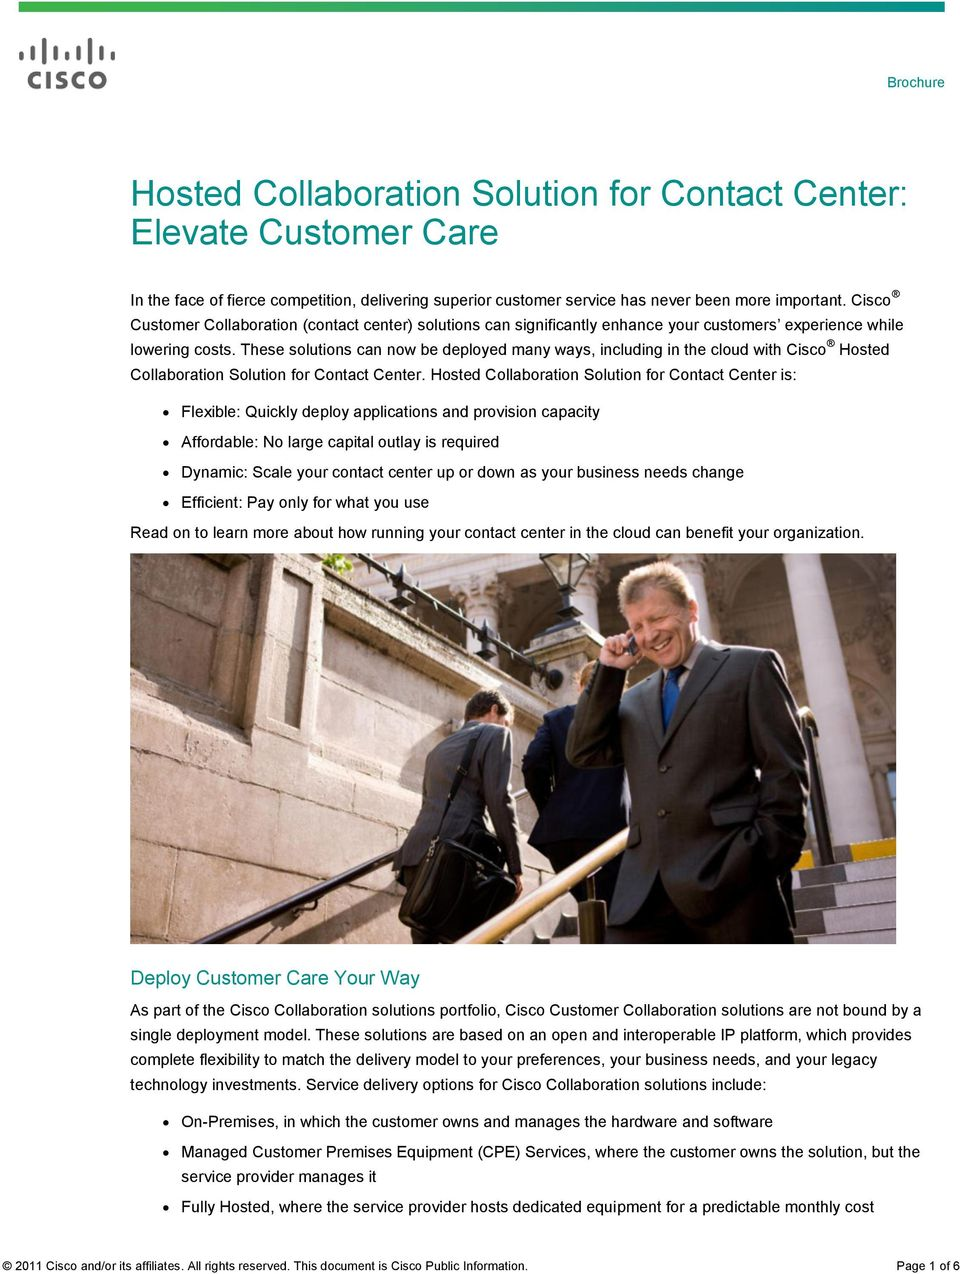 These solutions can now be deployed many ways, including in the cloud with Cisco Hosted Collaboration Solution for Contact Center.